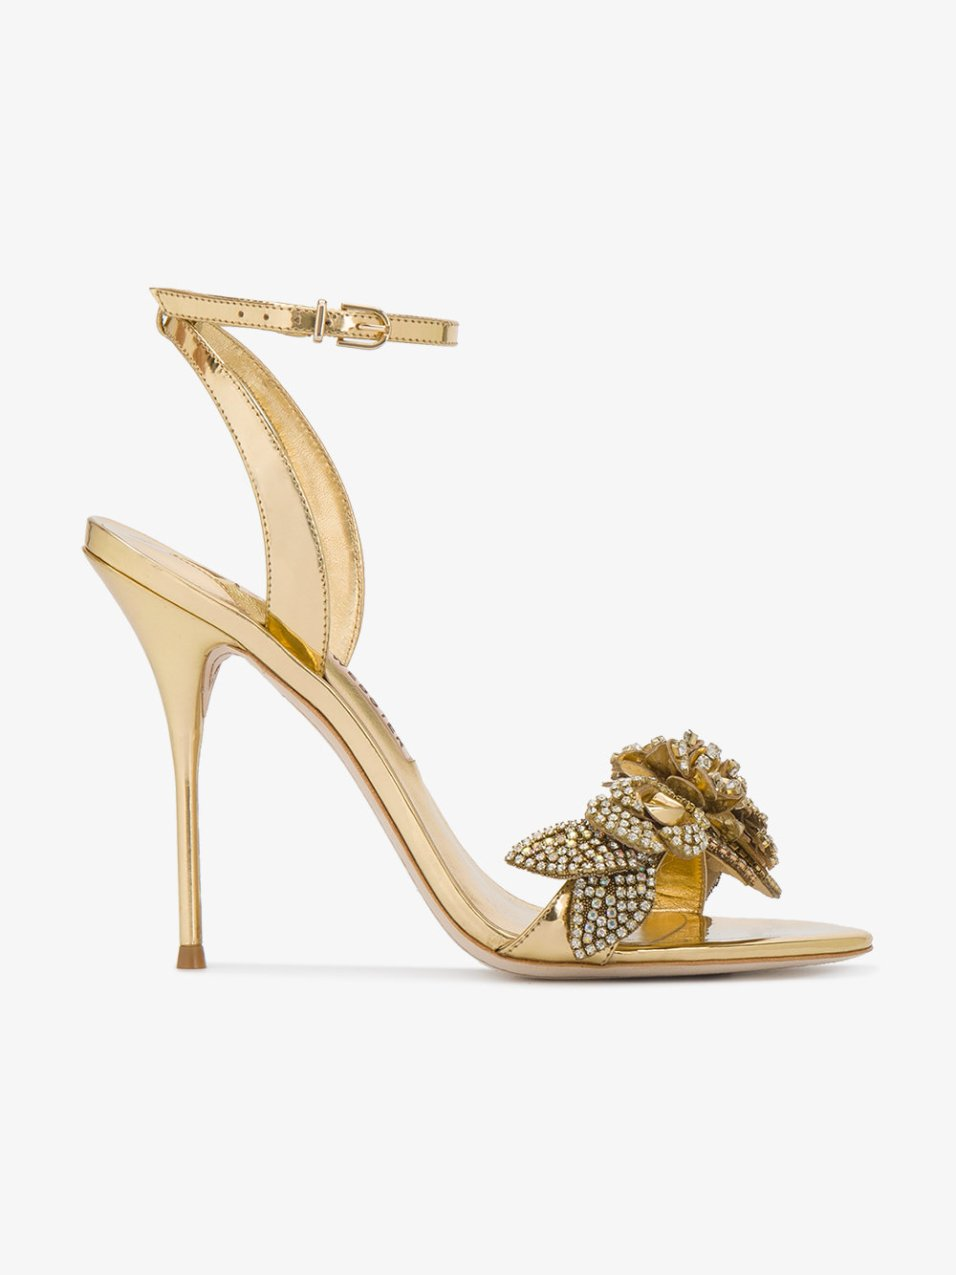 sophia webster heels gold